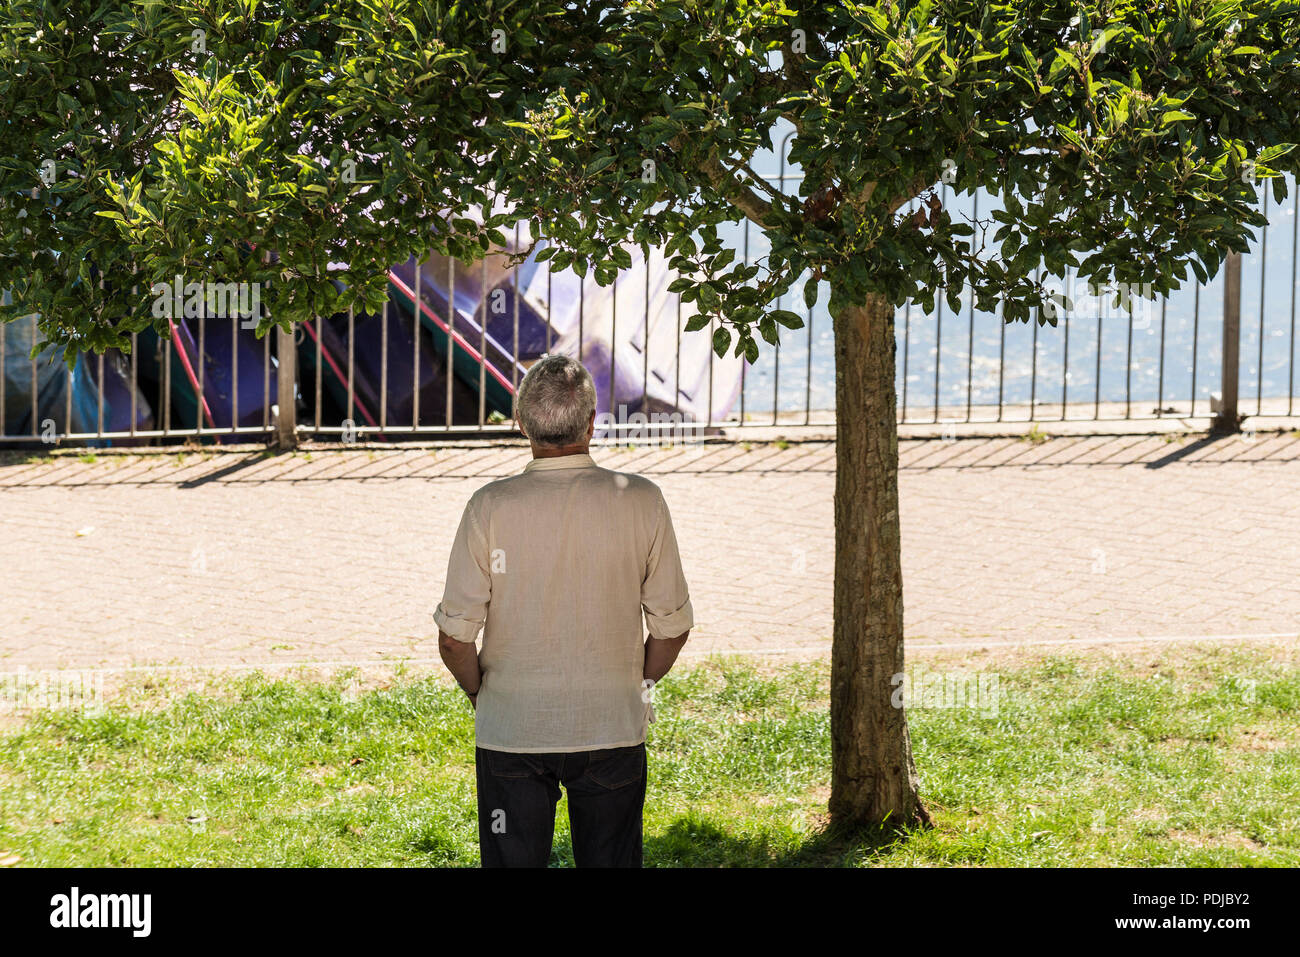 A man standing in the shade under a tree in Trenance Park in Newquay Cornwall. - Stock Image